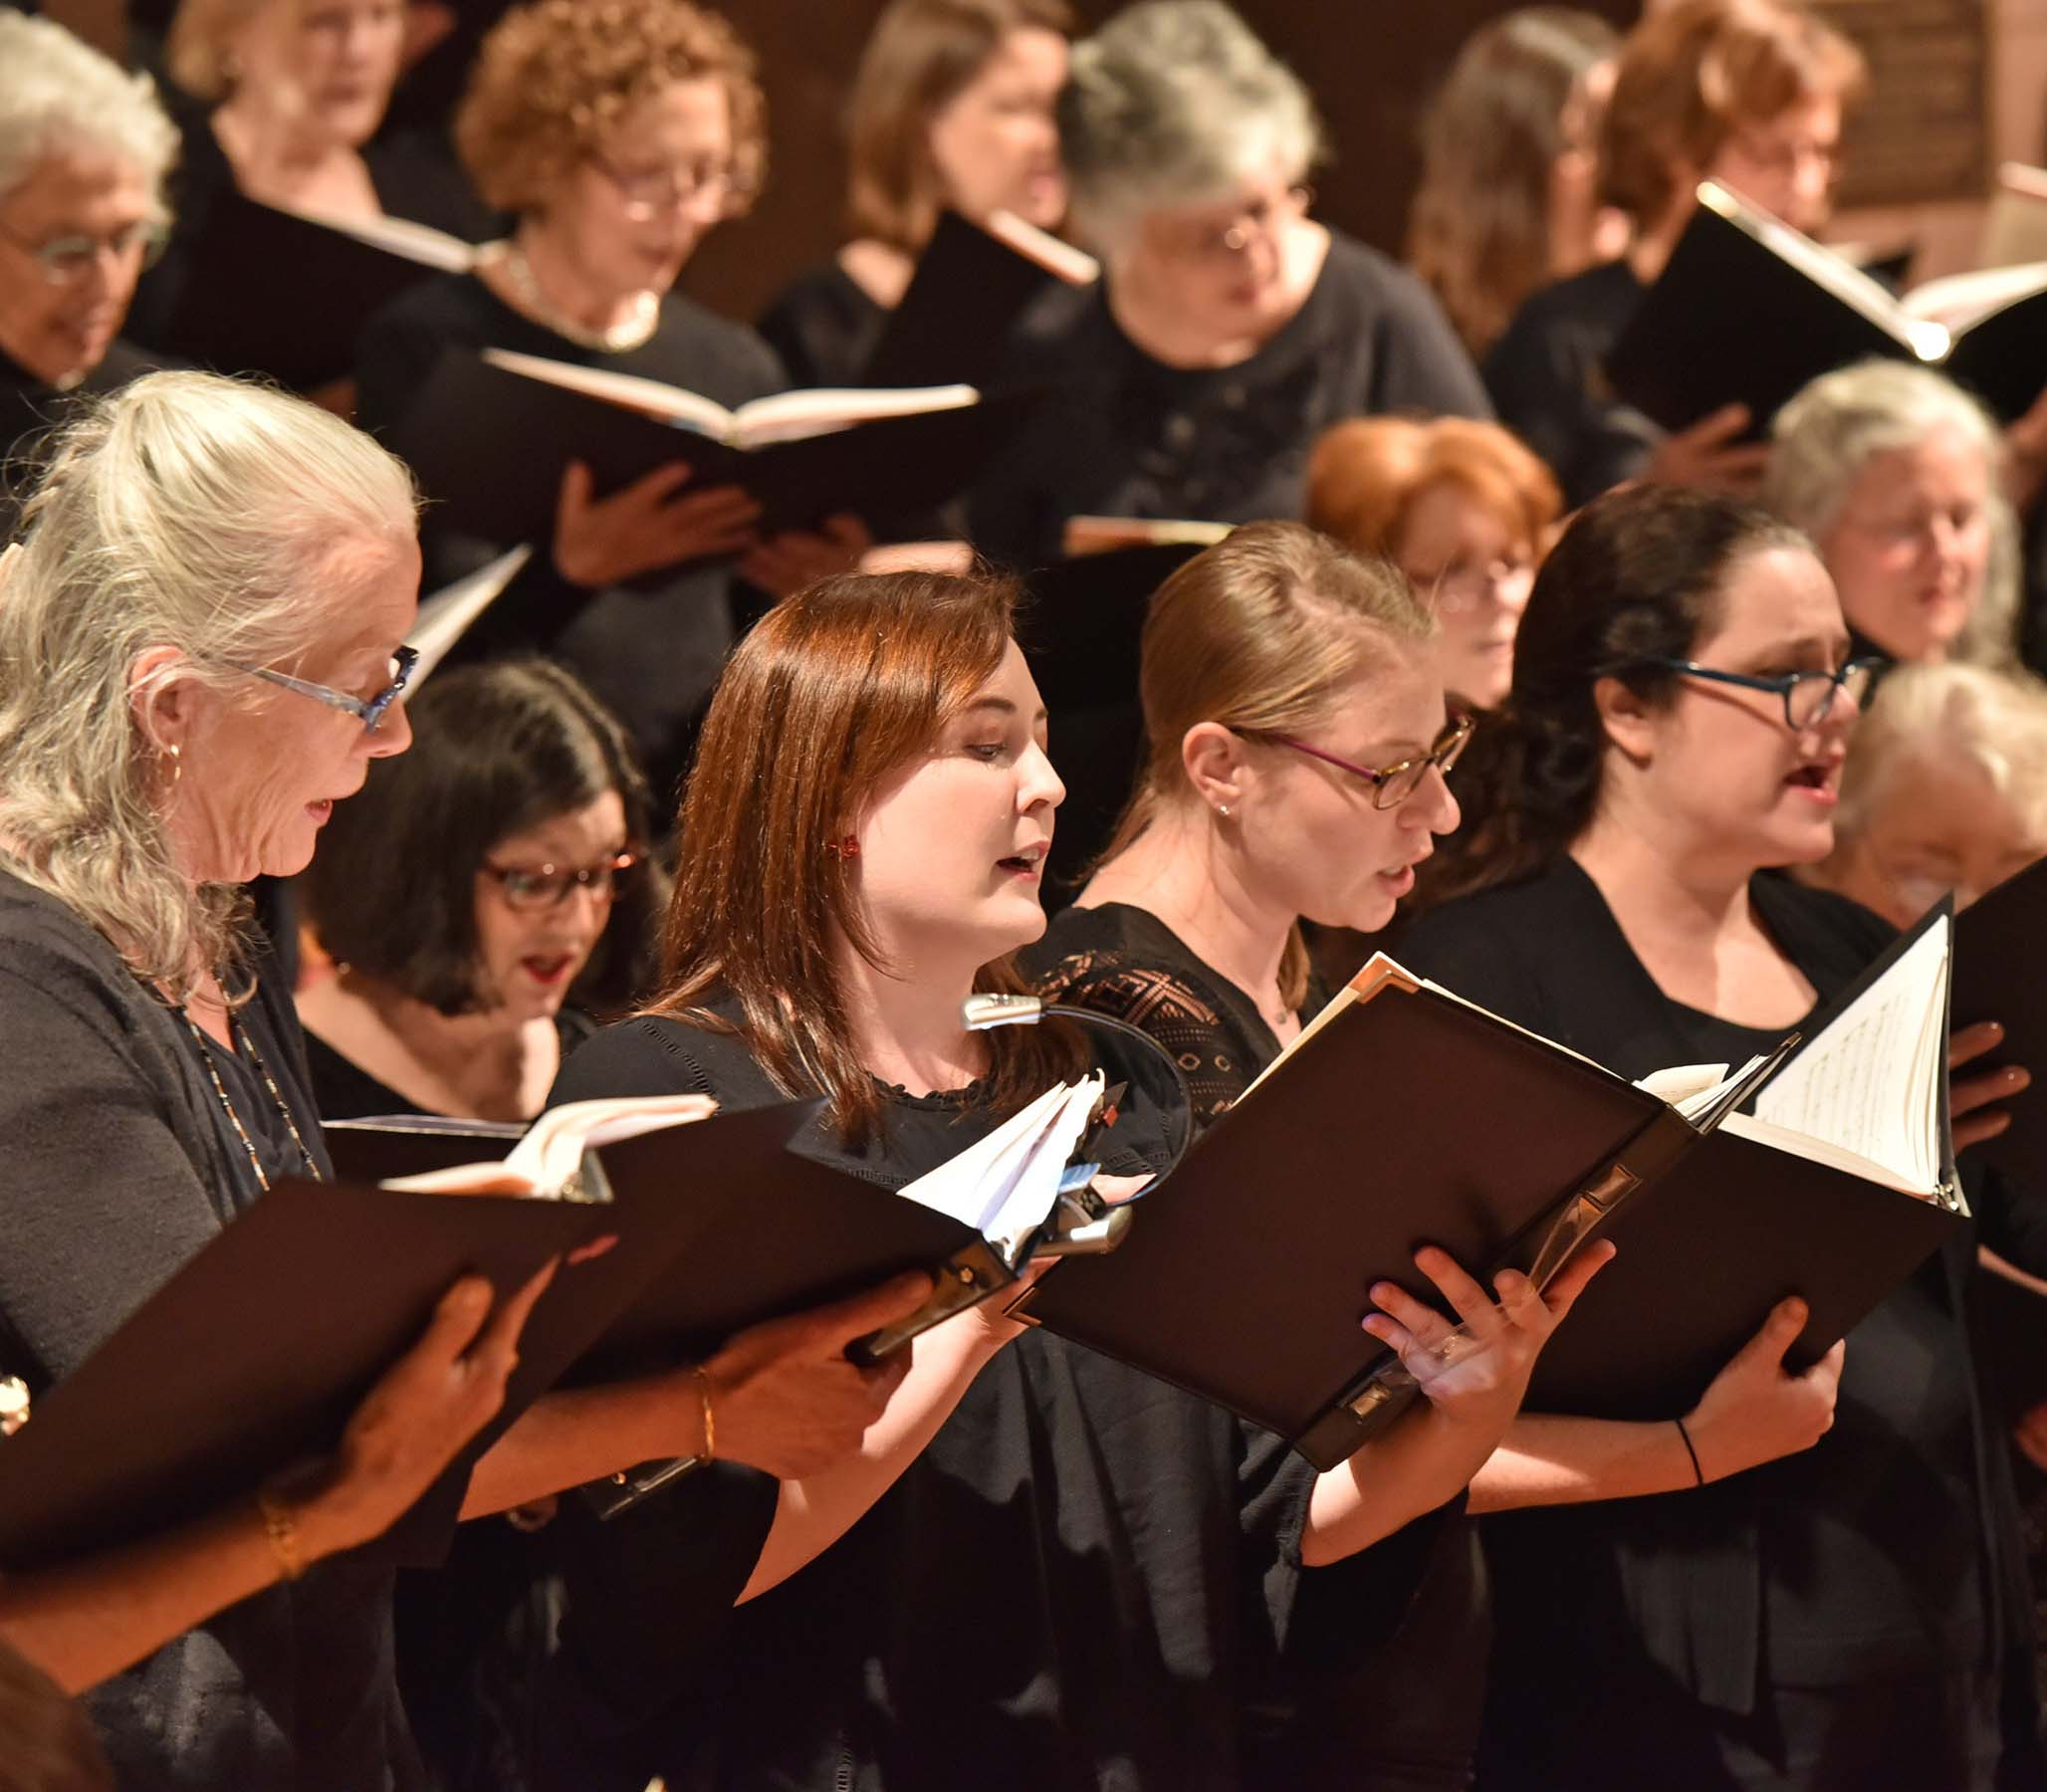 Who We Are - WHWC is a community women's choral group led by a professional music director. We take pride in performing challenging, diverse music in a broad range of innovative and entertaining styles.